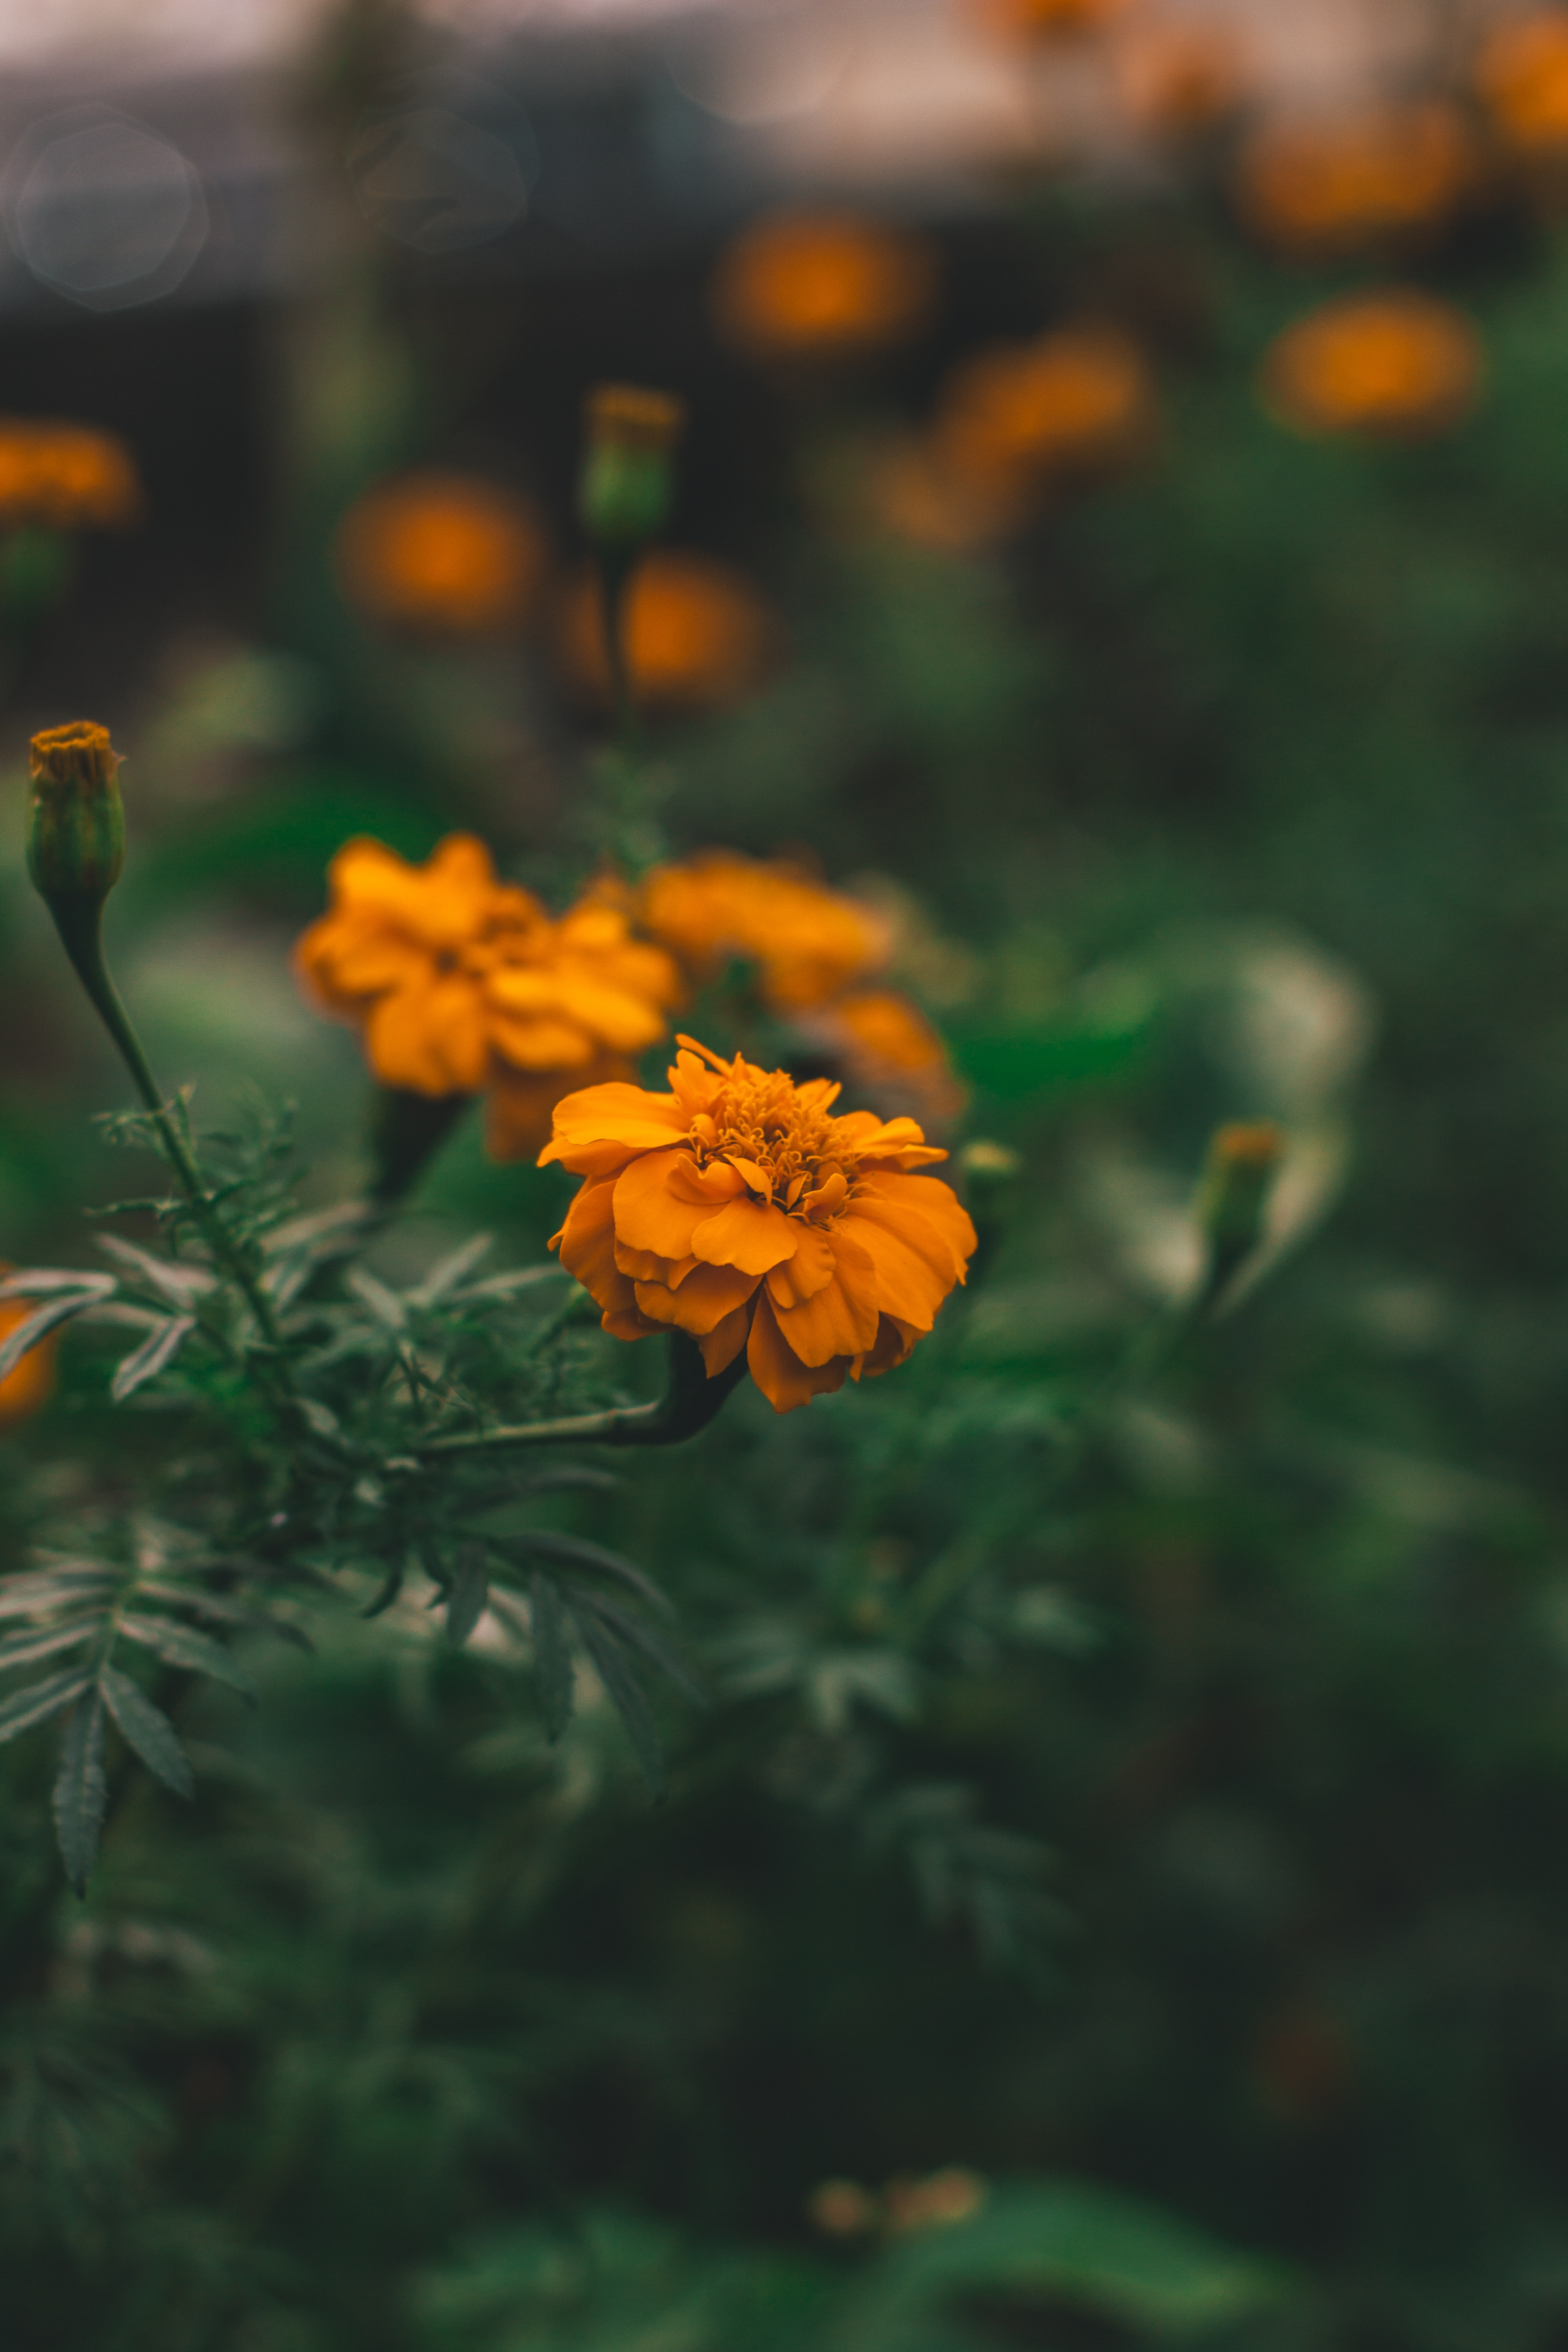 149146 Screensavers and Wallpapers Flower Bed for phone. Download Flowers, Flower, Macro, Blur, Smooth, Flower Bed, Flowerbed pictures for free